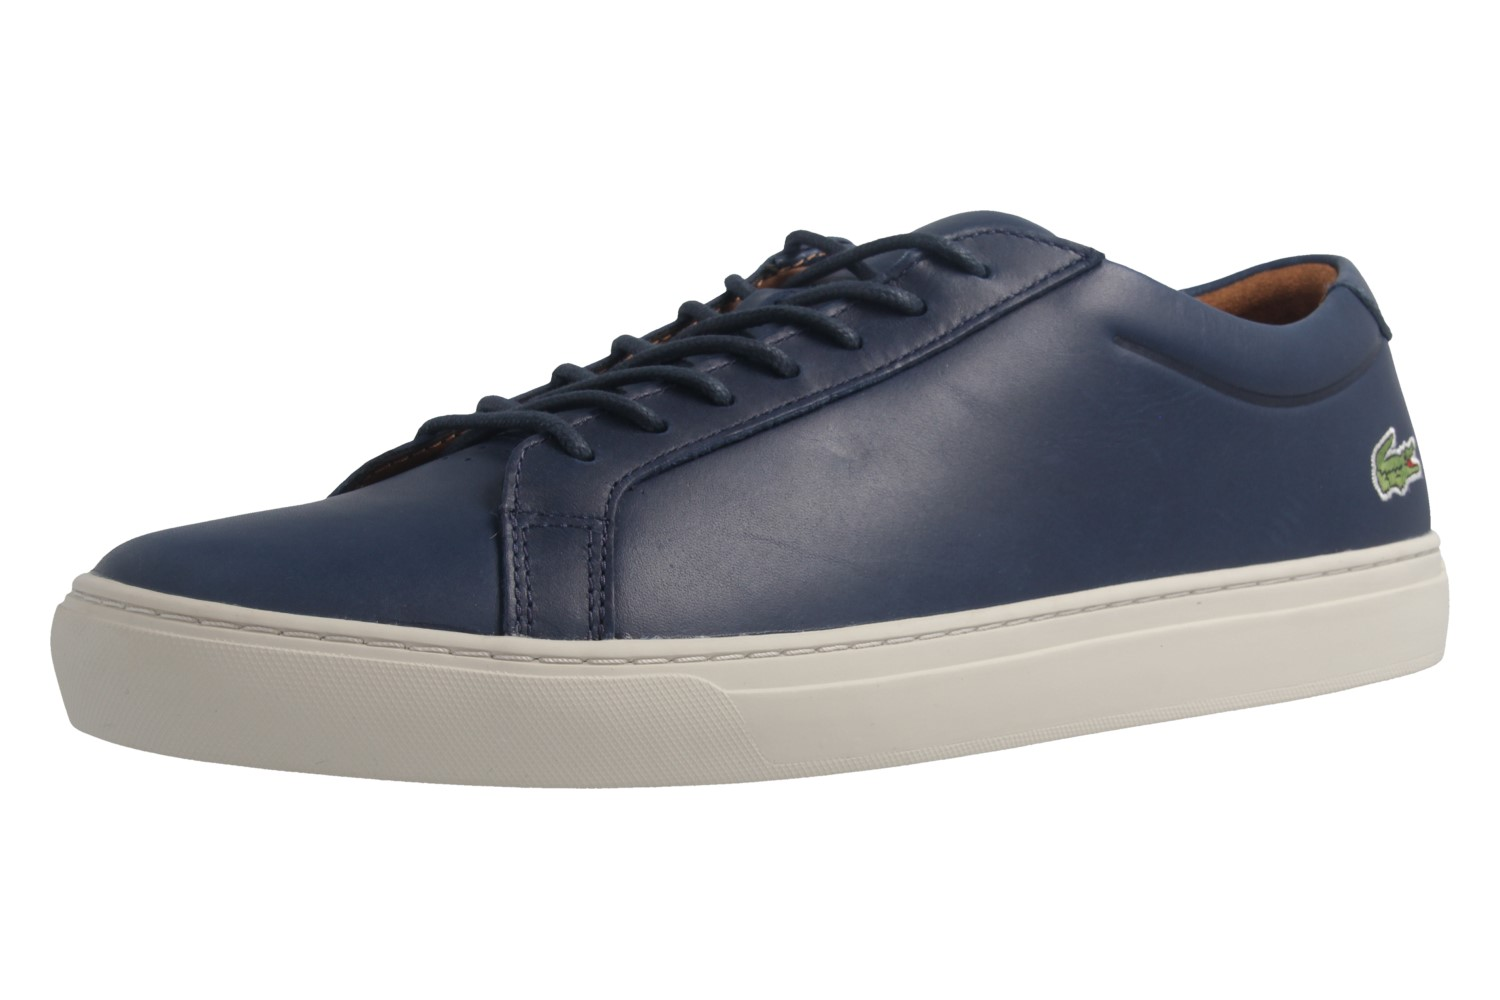 lacoste herren sneaker 317 blau schuhe in bergr en herrenschuhe in bergr en. Black Bedroom Furniture Sets. Home Design Ideas